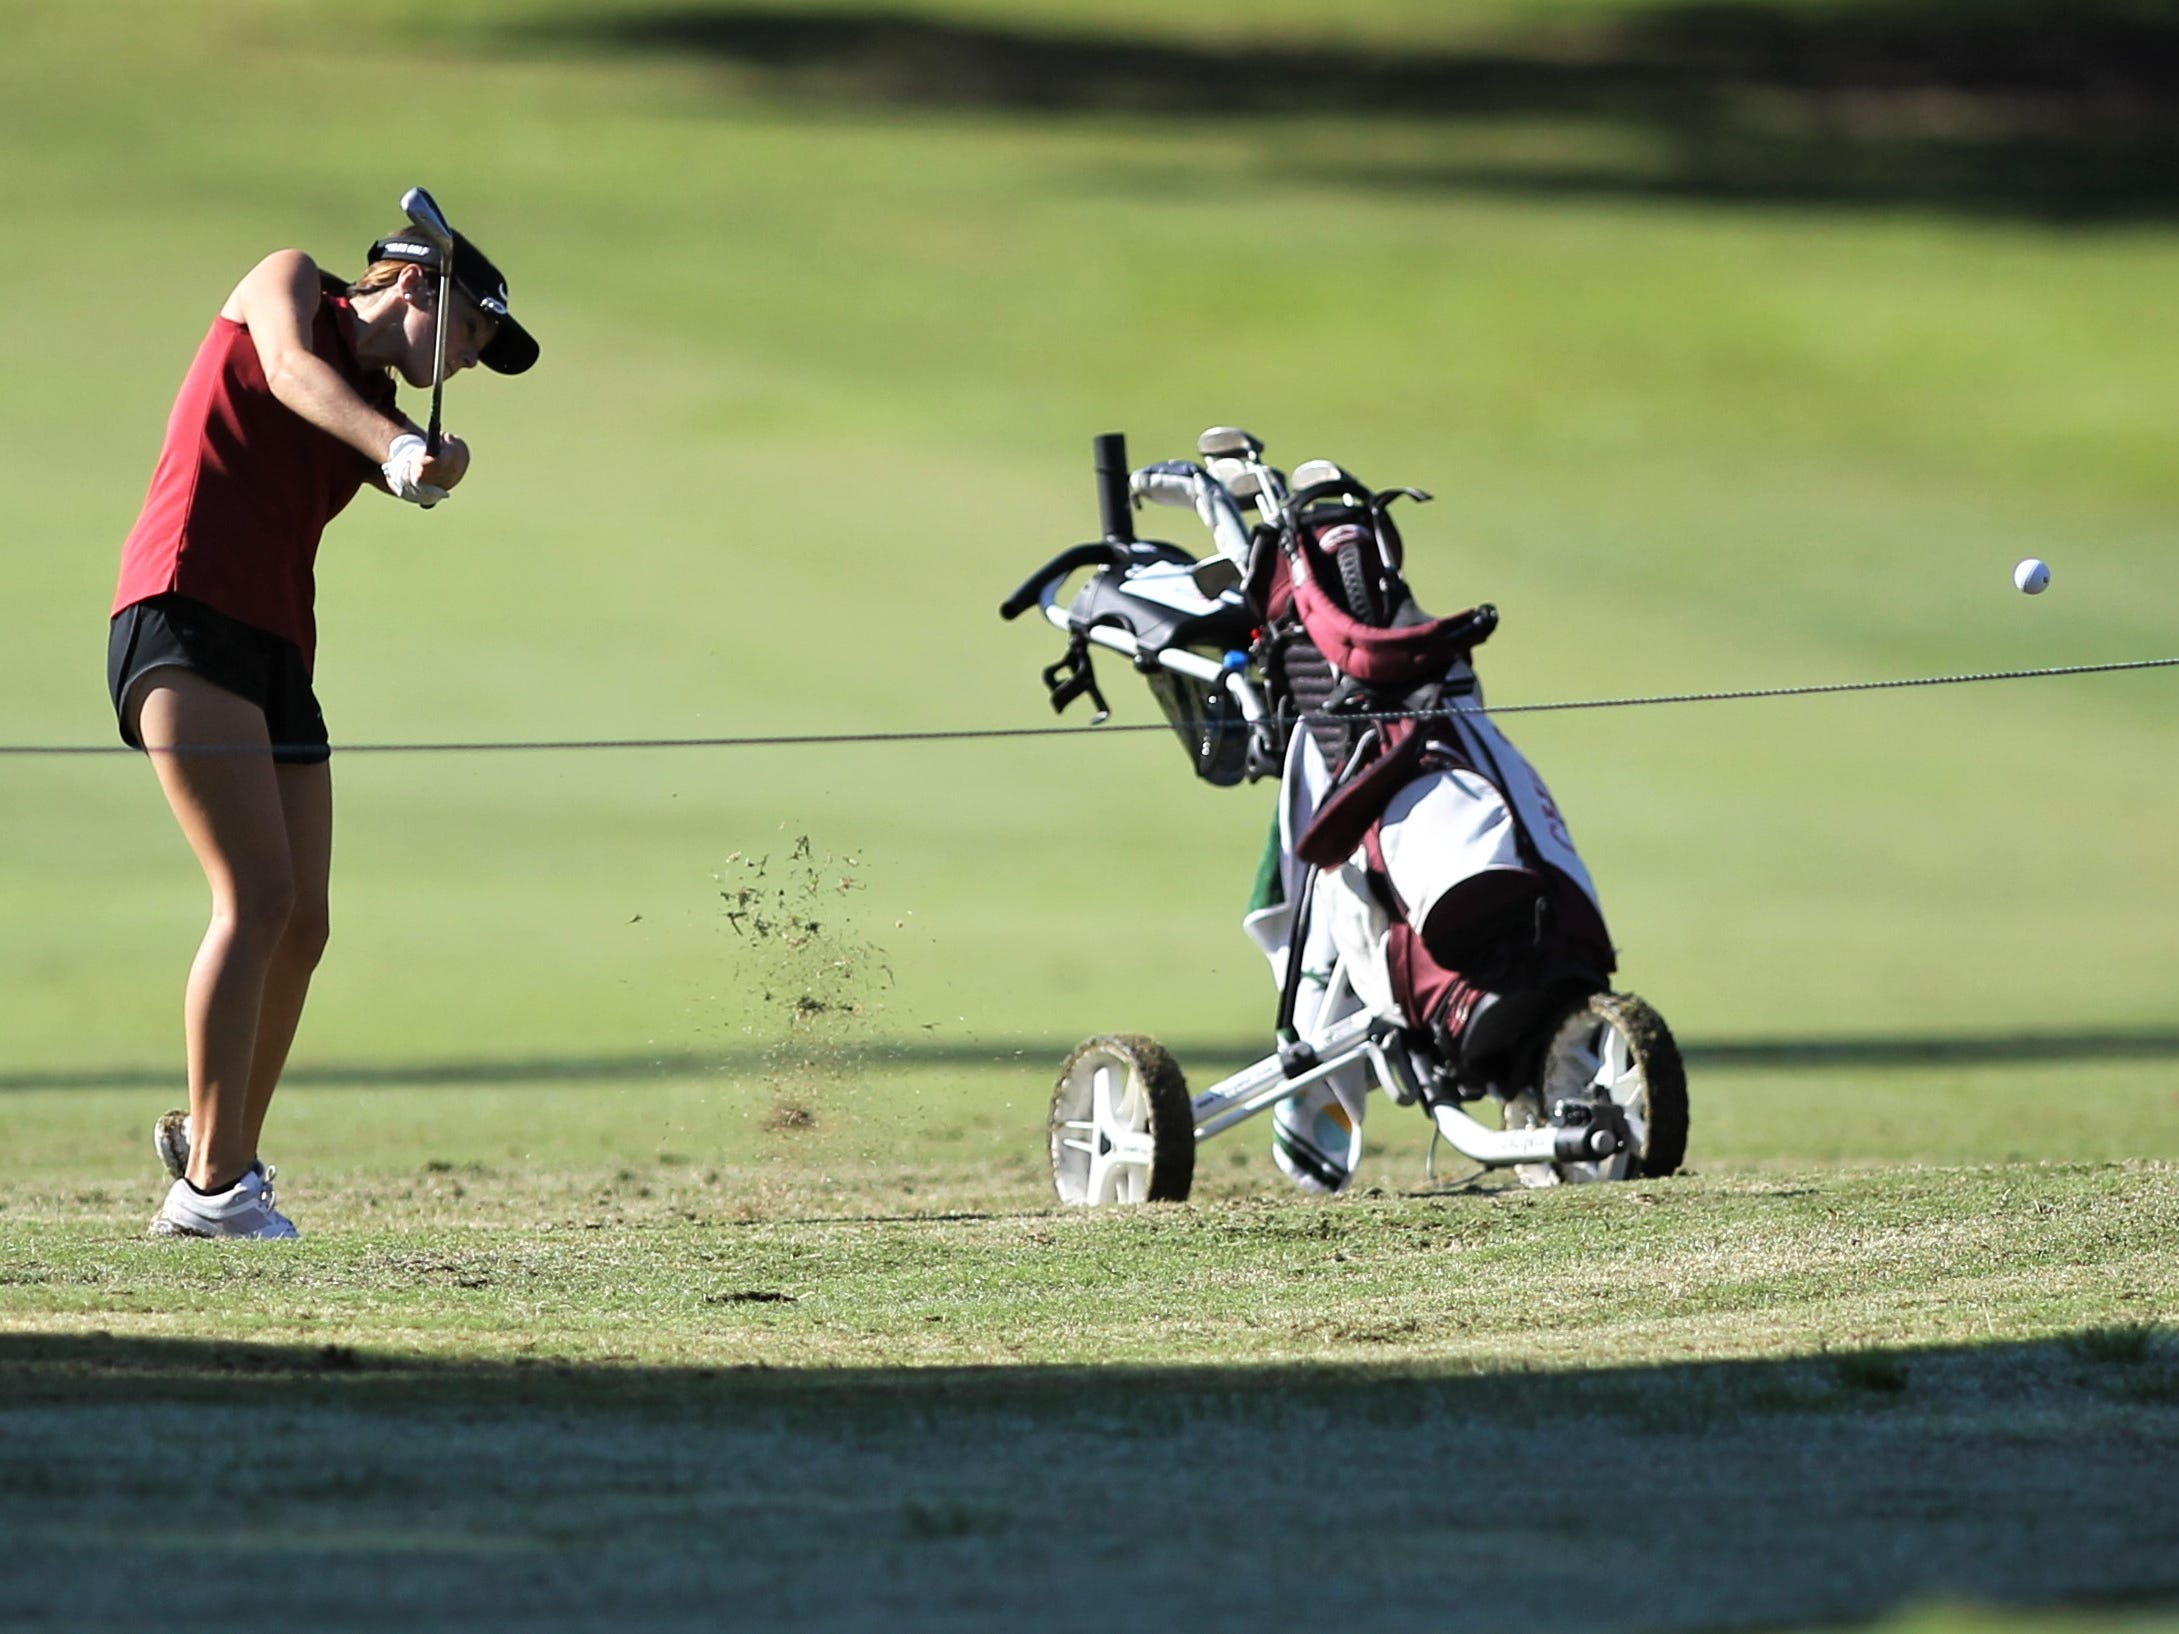 Chiles sophomore Abby LaMothe plays in the girls golf Panhandle Invitational at Killearn Country Club, Oct. 4, 2018.